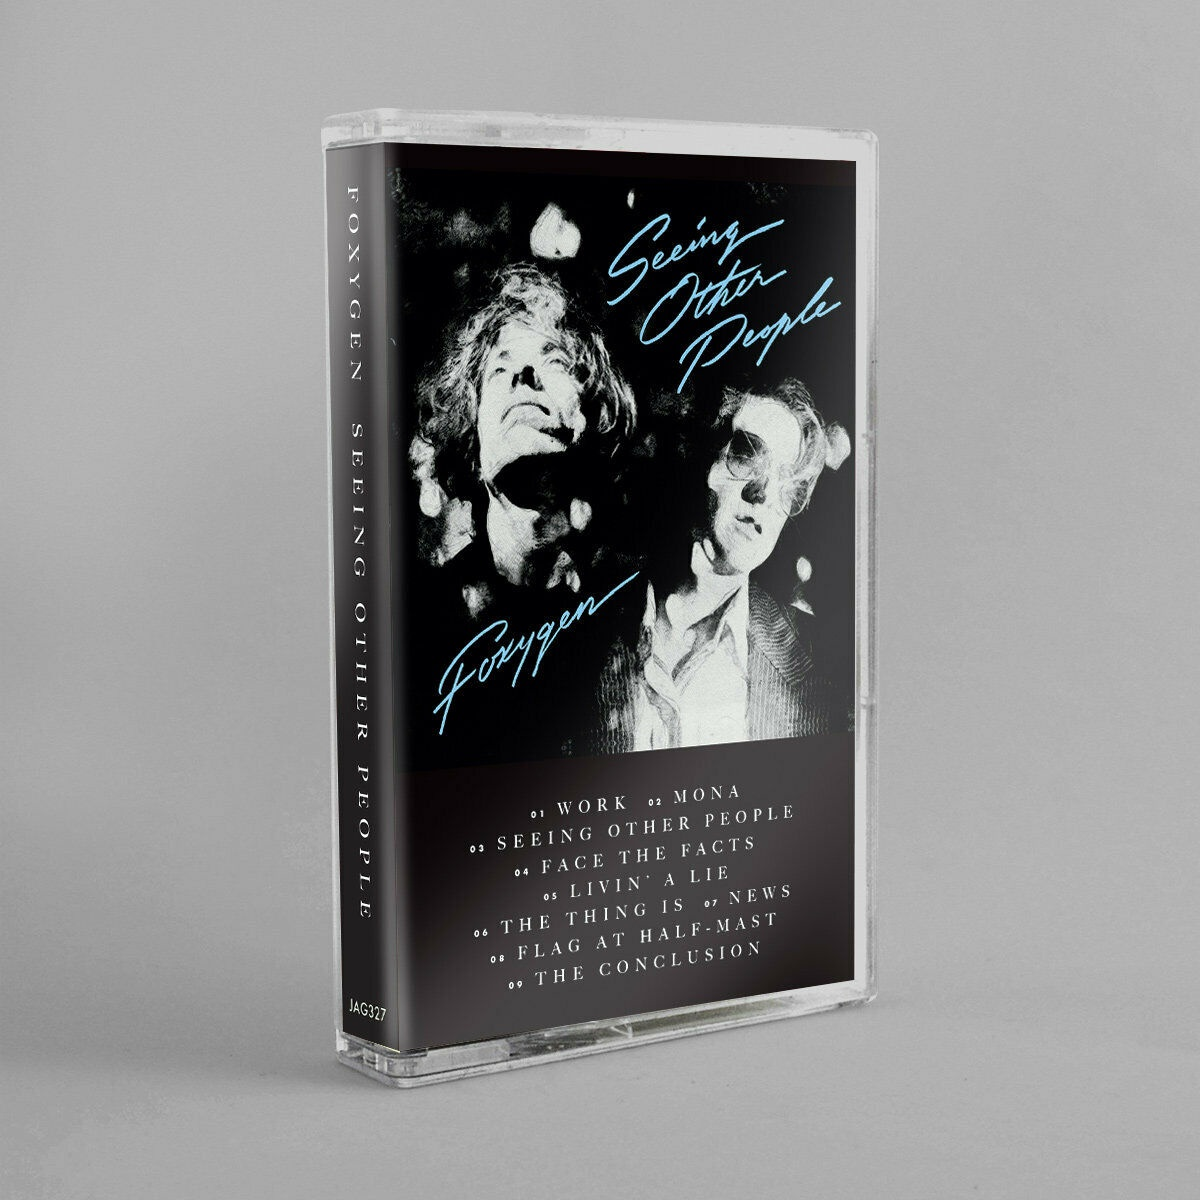 Foxygen - Seeing Other People [Cassette]